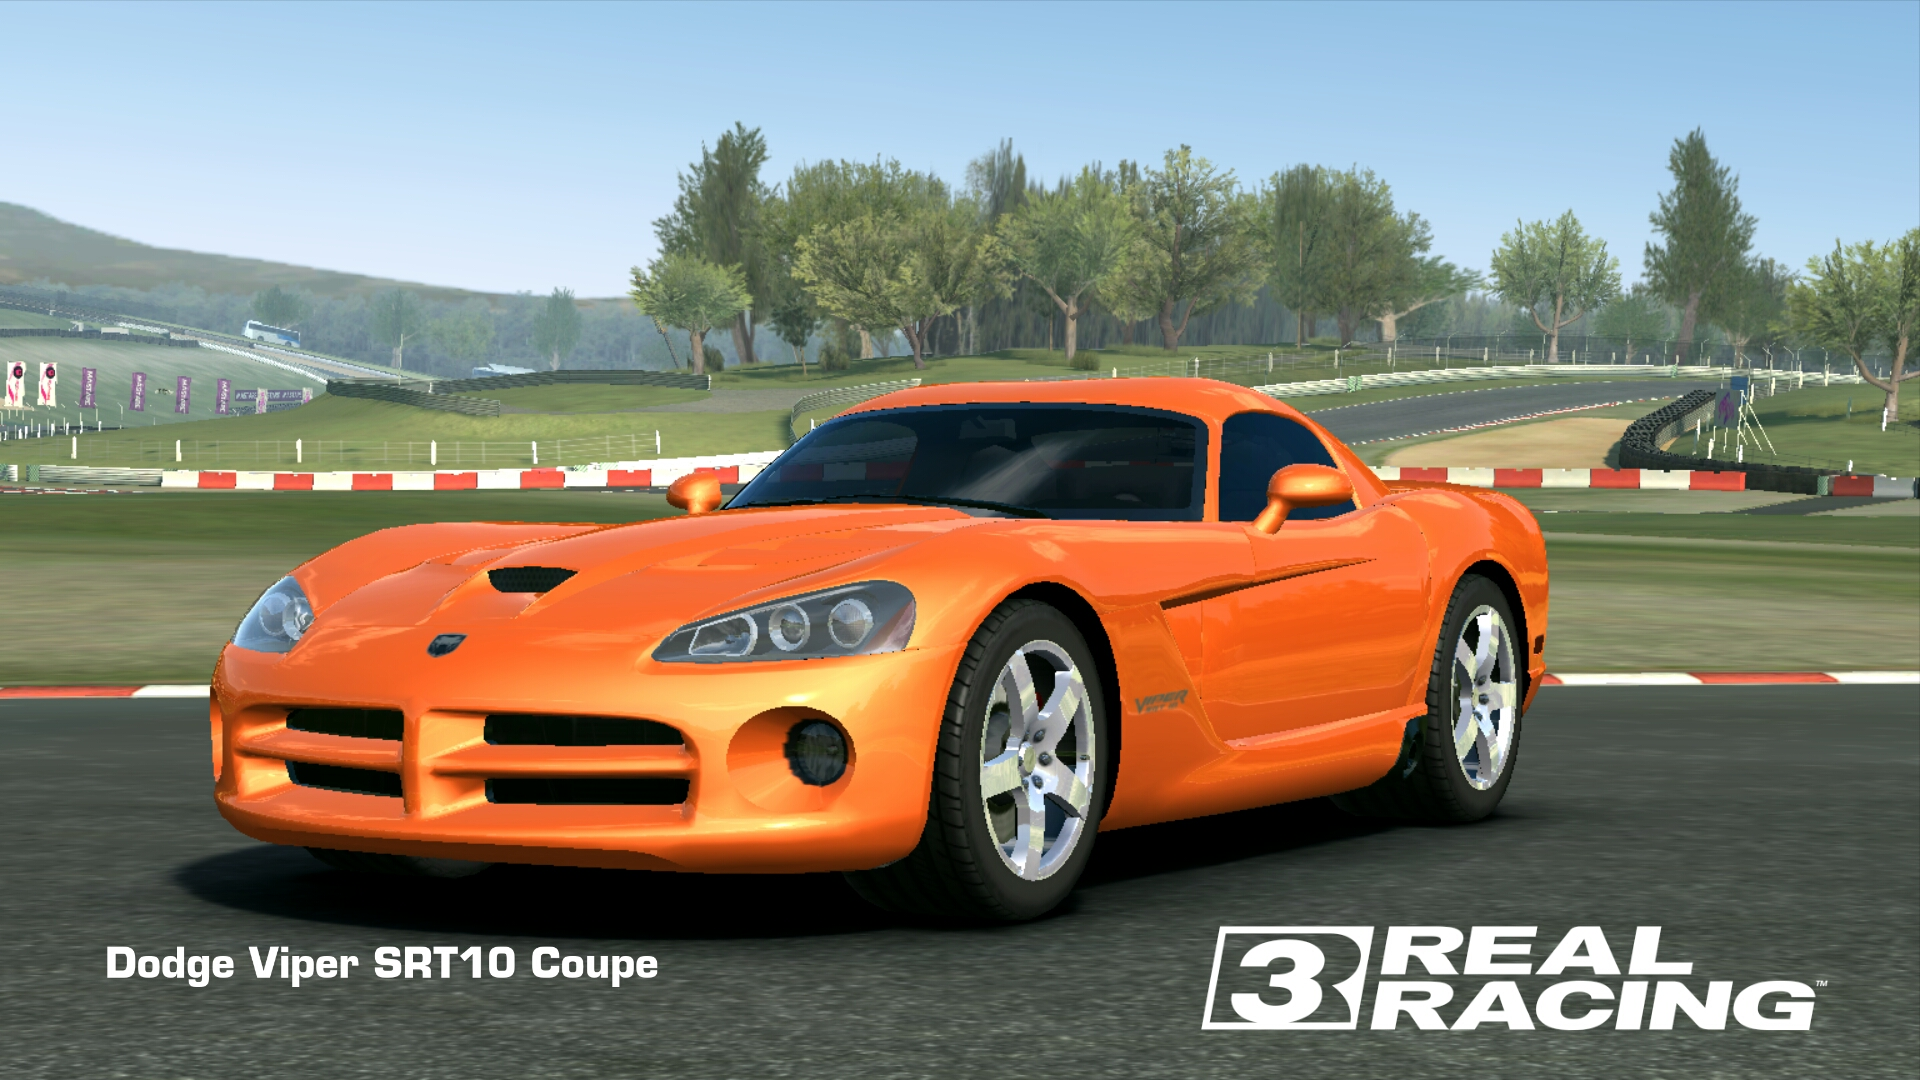 Showcase Dodge Viper SRT10 Coupe